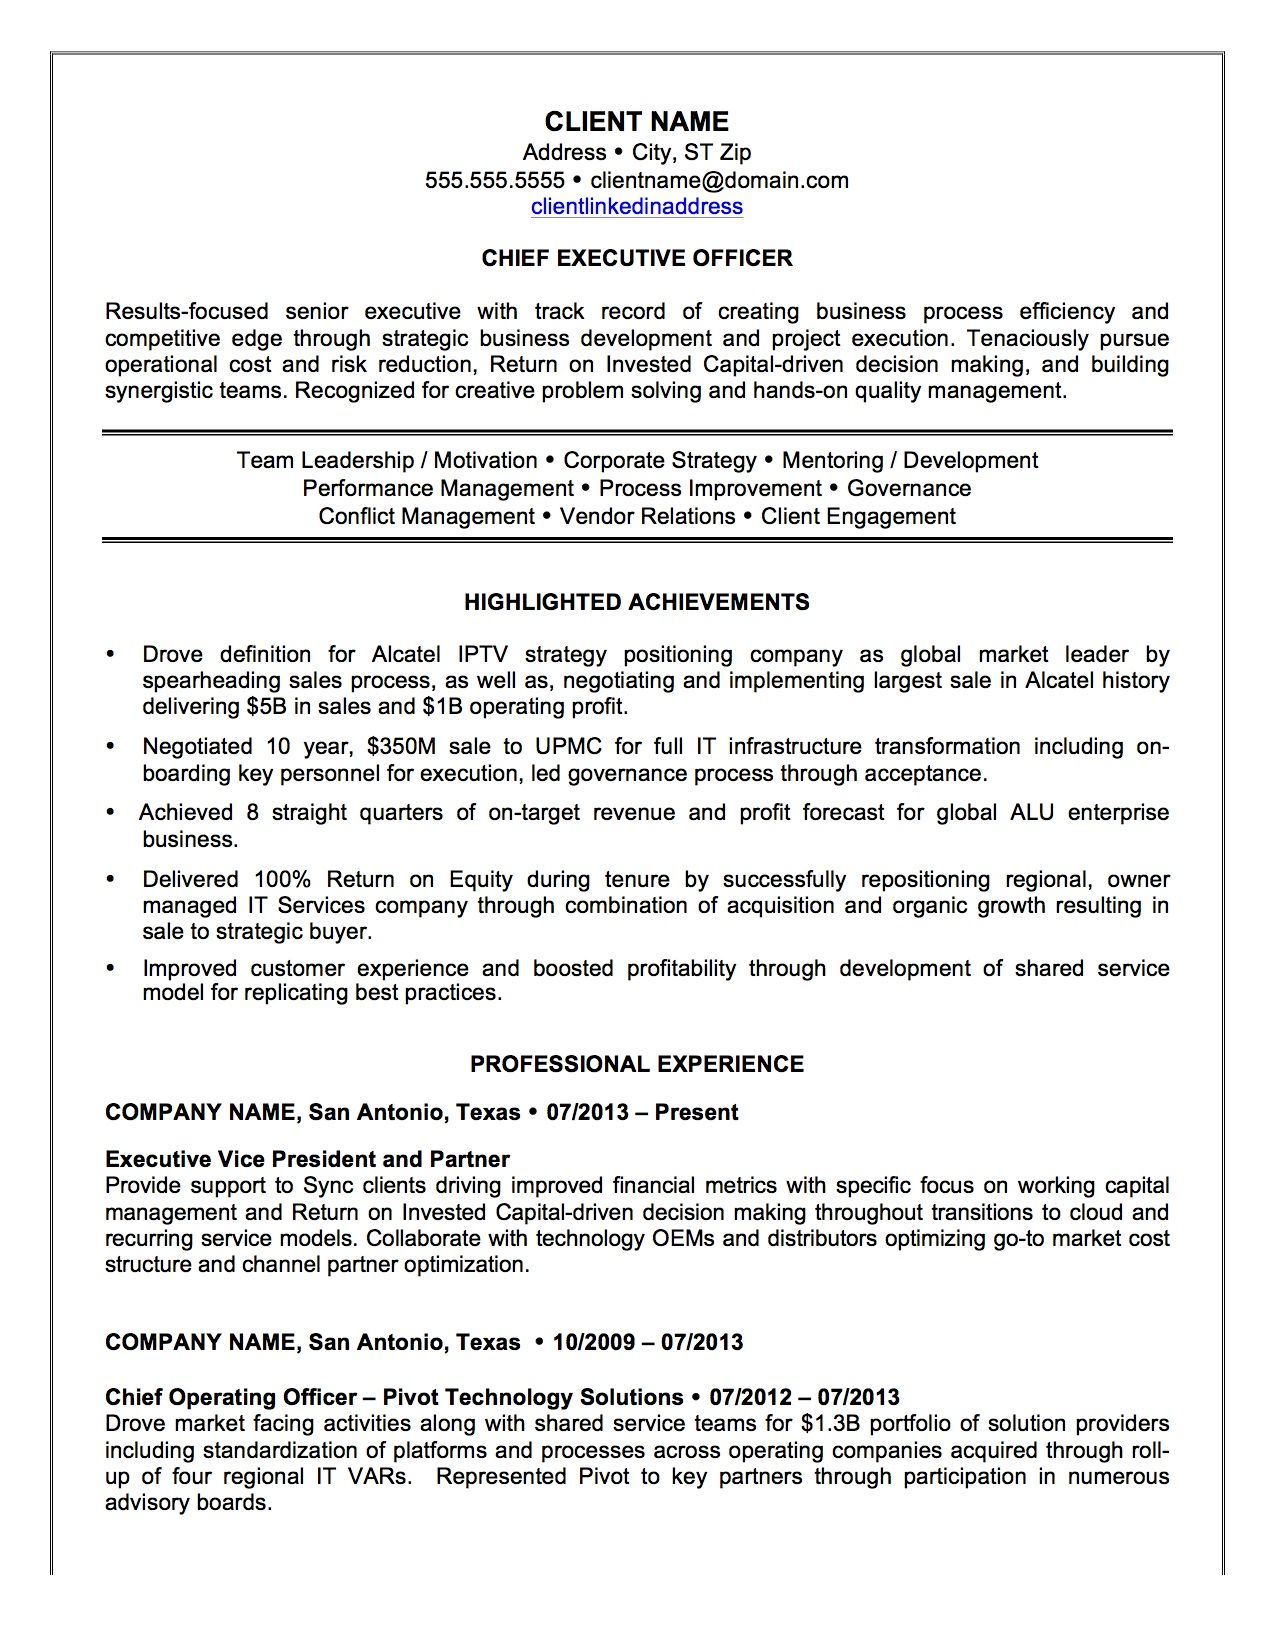 chief executive officer resume sample httpresumesdesigncomchief executive officer resume sample